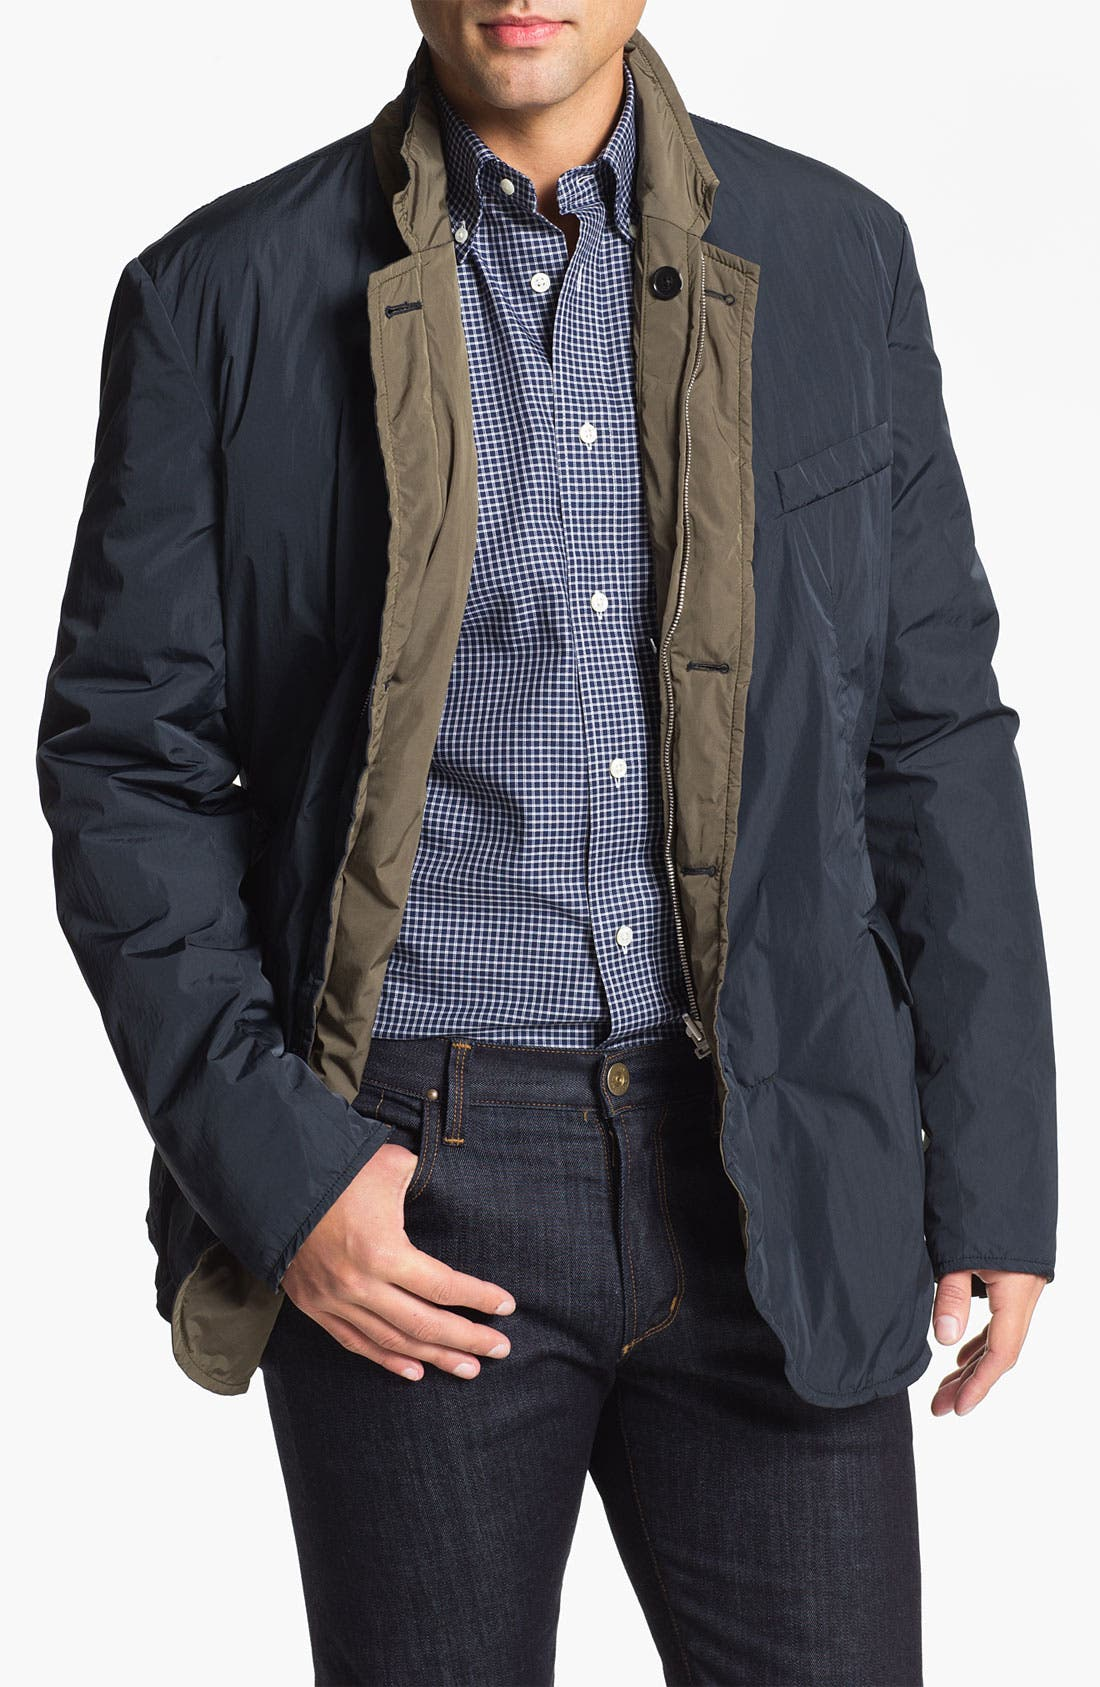 Alternate Image 1 Selected - Façonnable Reversible Jacket